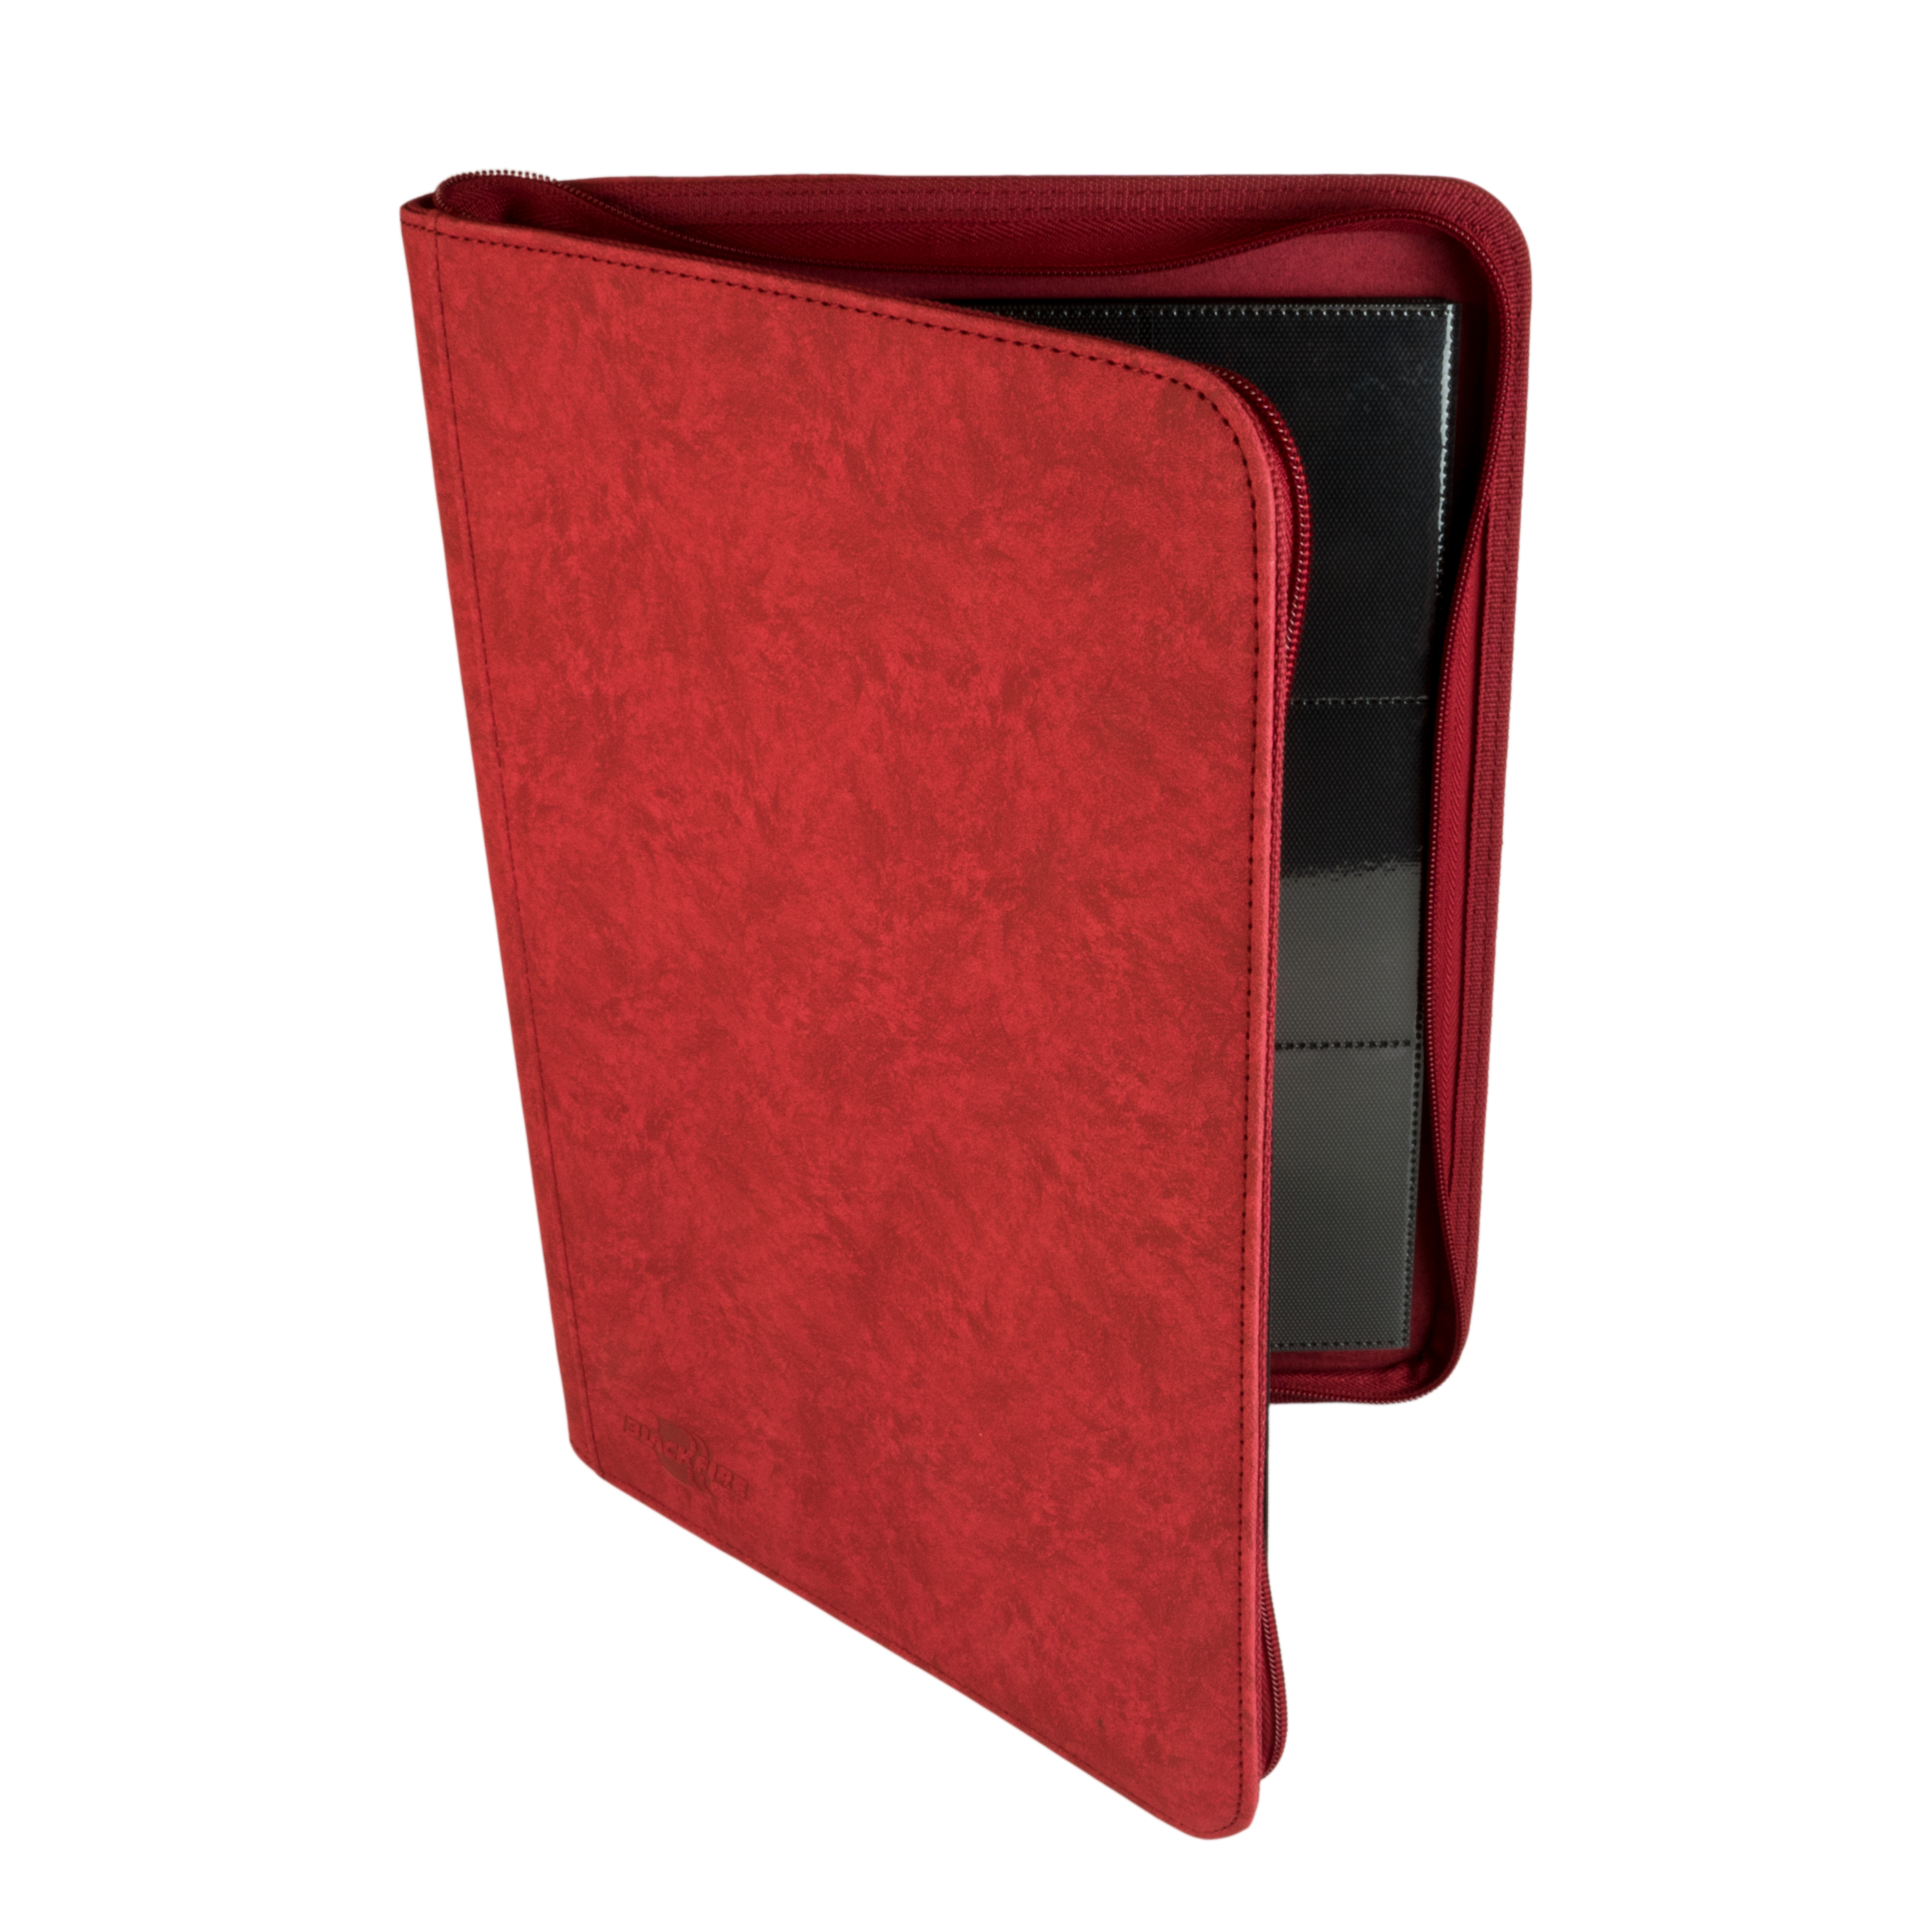 Album A4 BF 9-Pocket Premium ZIP Album - RED